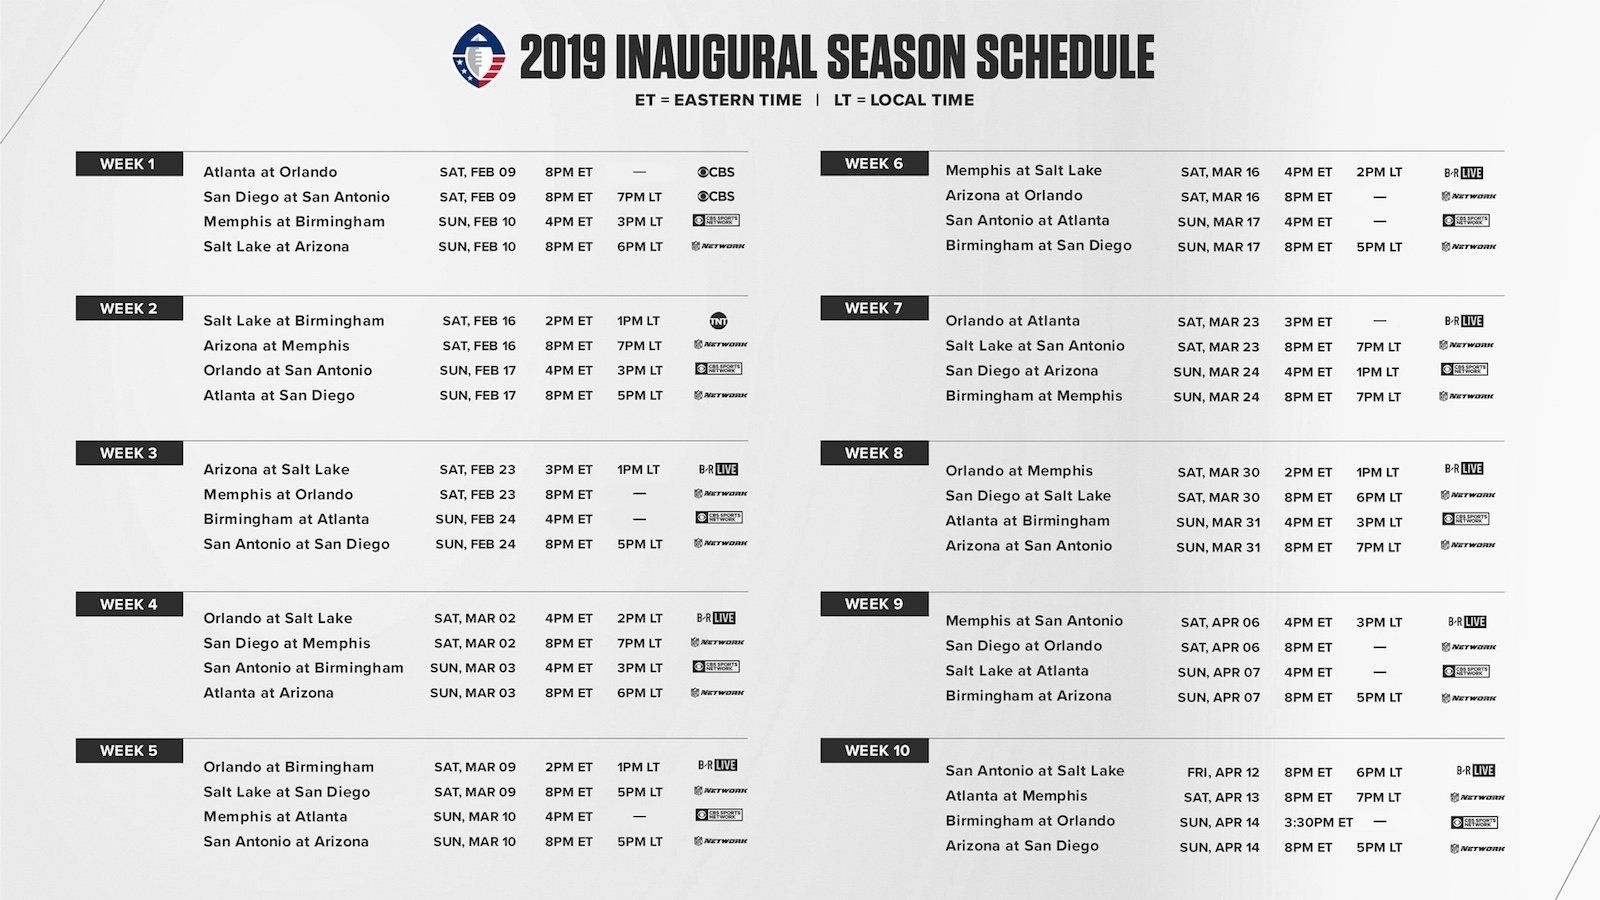 Printable Nfl Schedule For 2019 2020 In 2020 Printable Nfl Schedule Nfl Calendar Calendar Printables